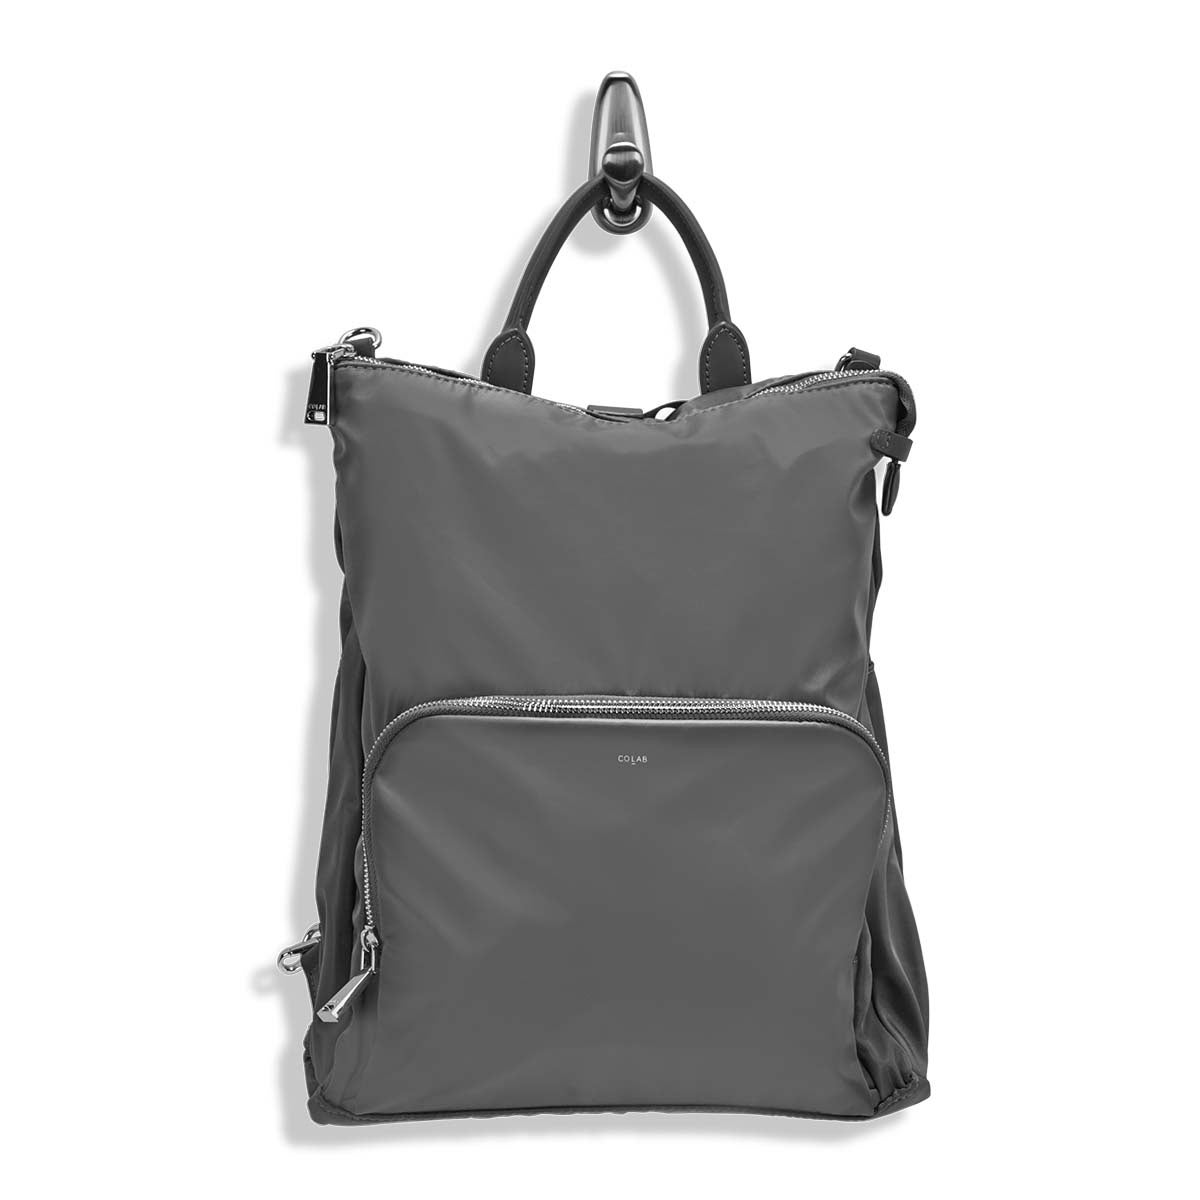 Lds Nellie gry convertible backpack